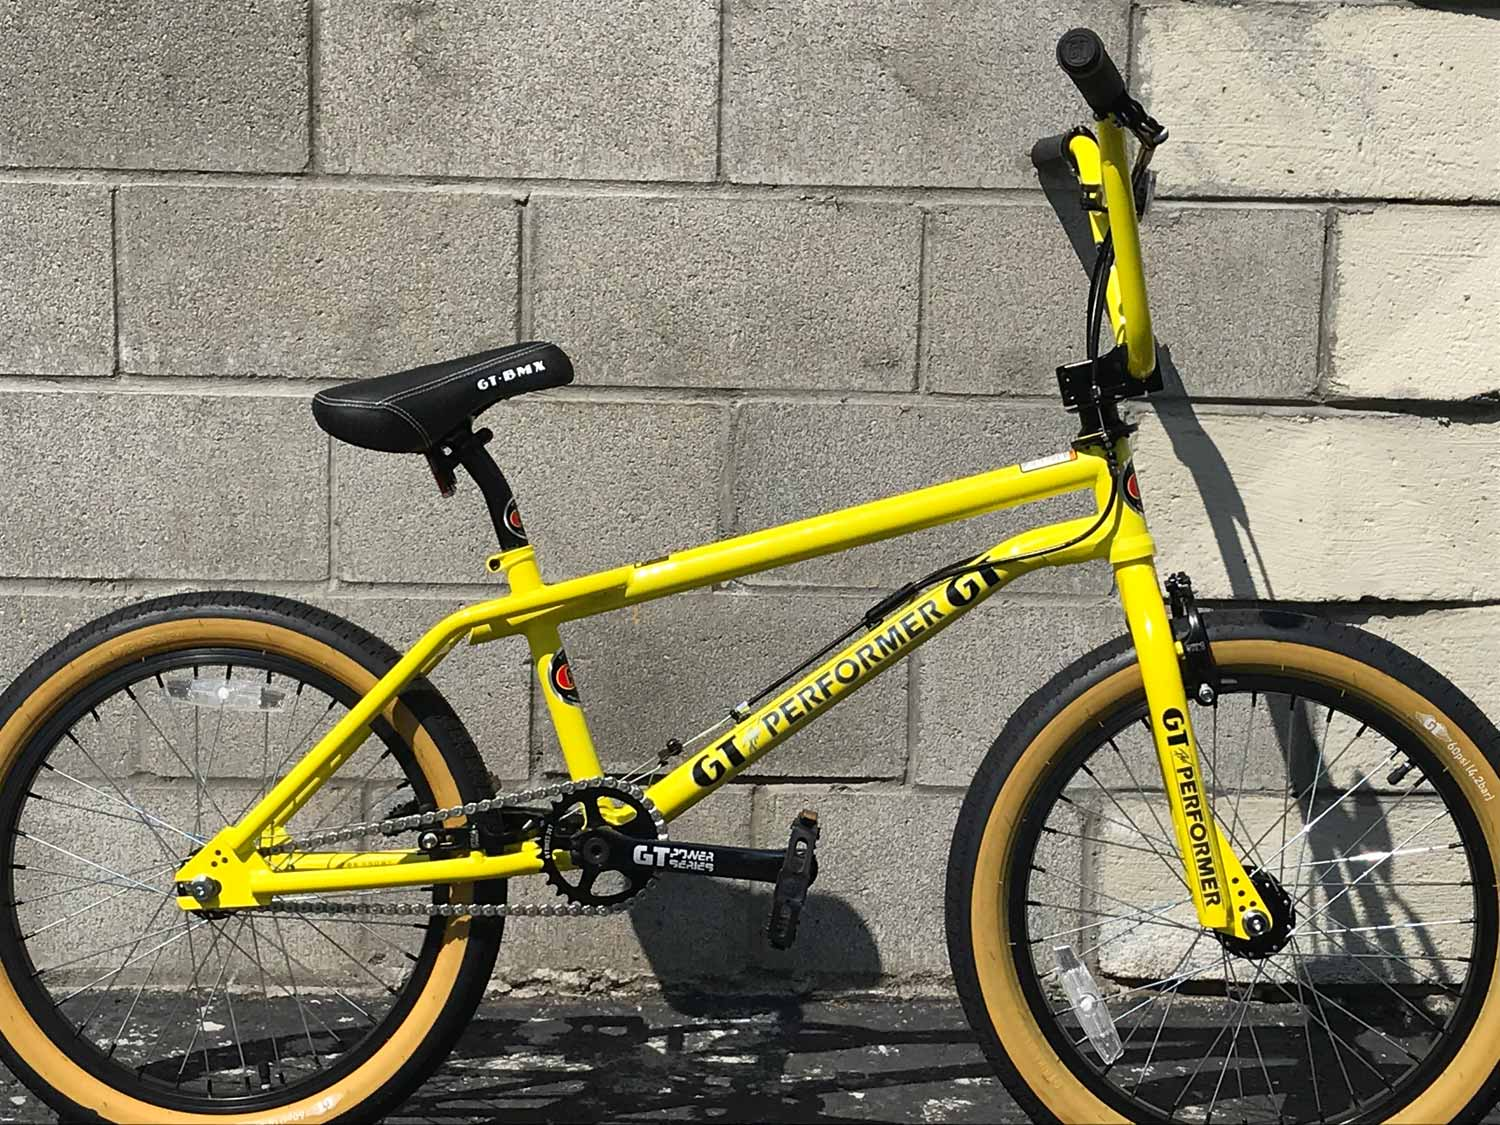 8d50b84884b The 2019 GT Pro Performer has a pure 1987 vibe with 2019 specs and  ride-ability. All chromoly tubing, threadless headset, mid-BB and current  geometry.